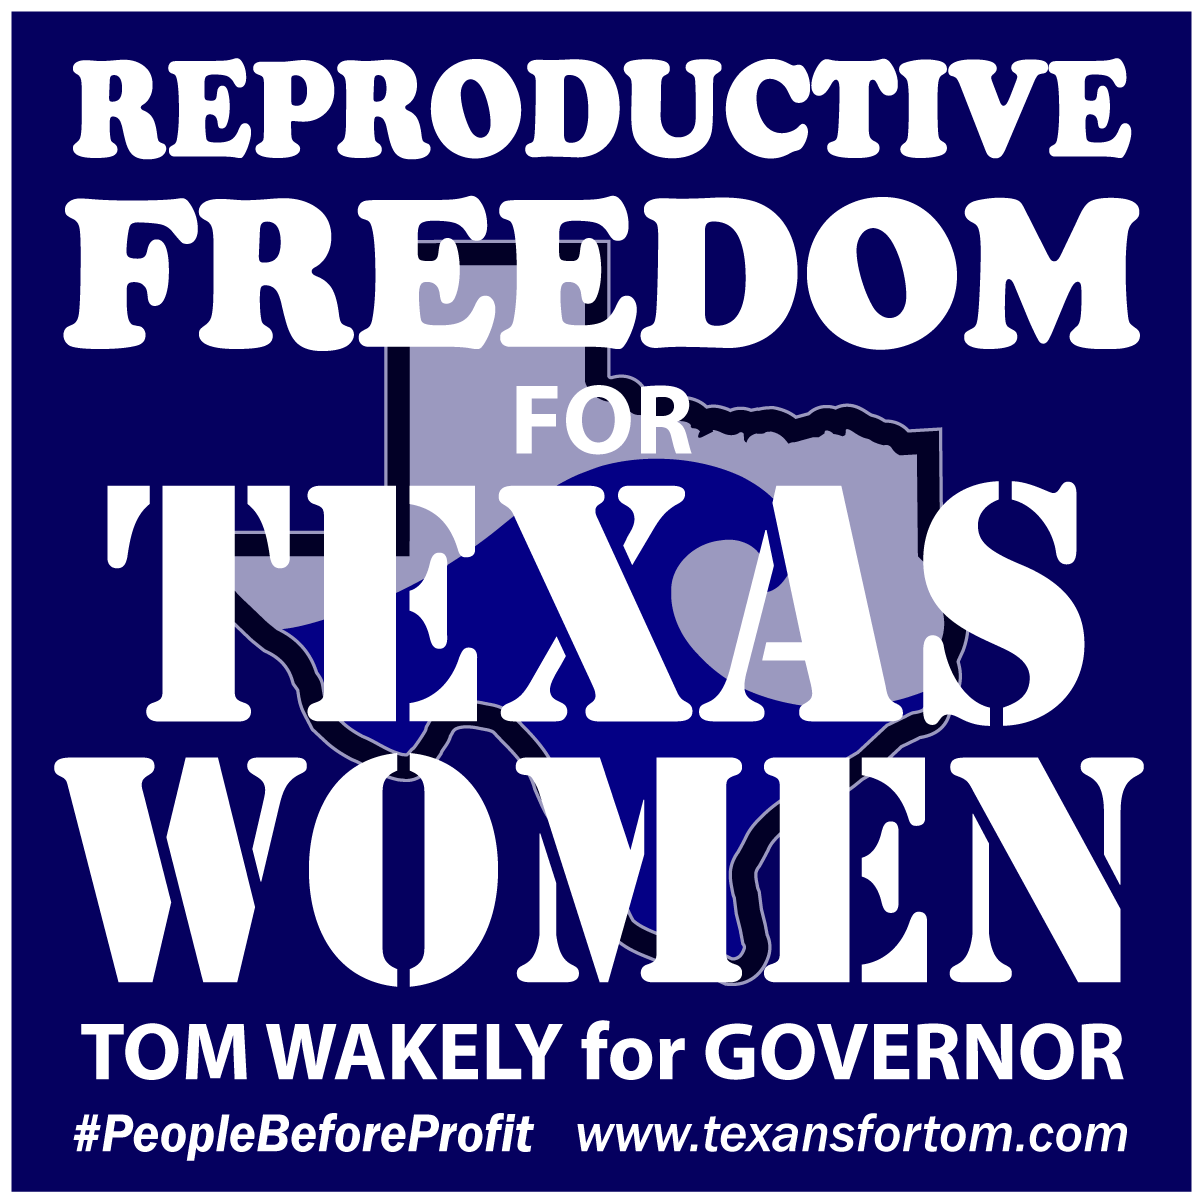 5_Reproductive-Freedom.png